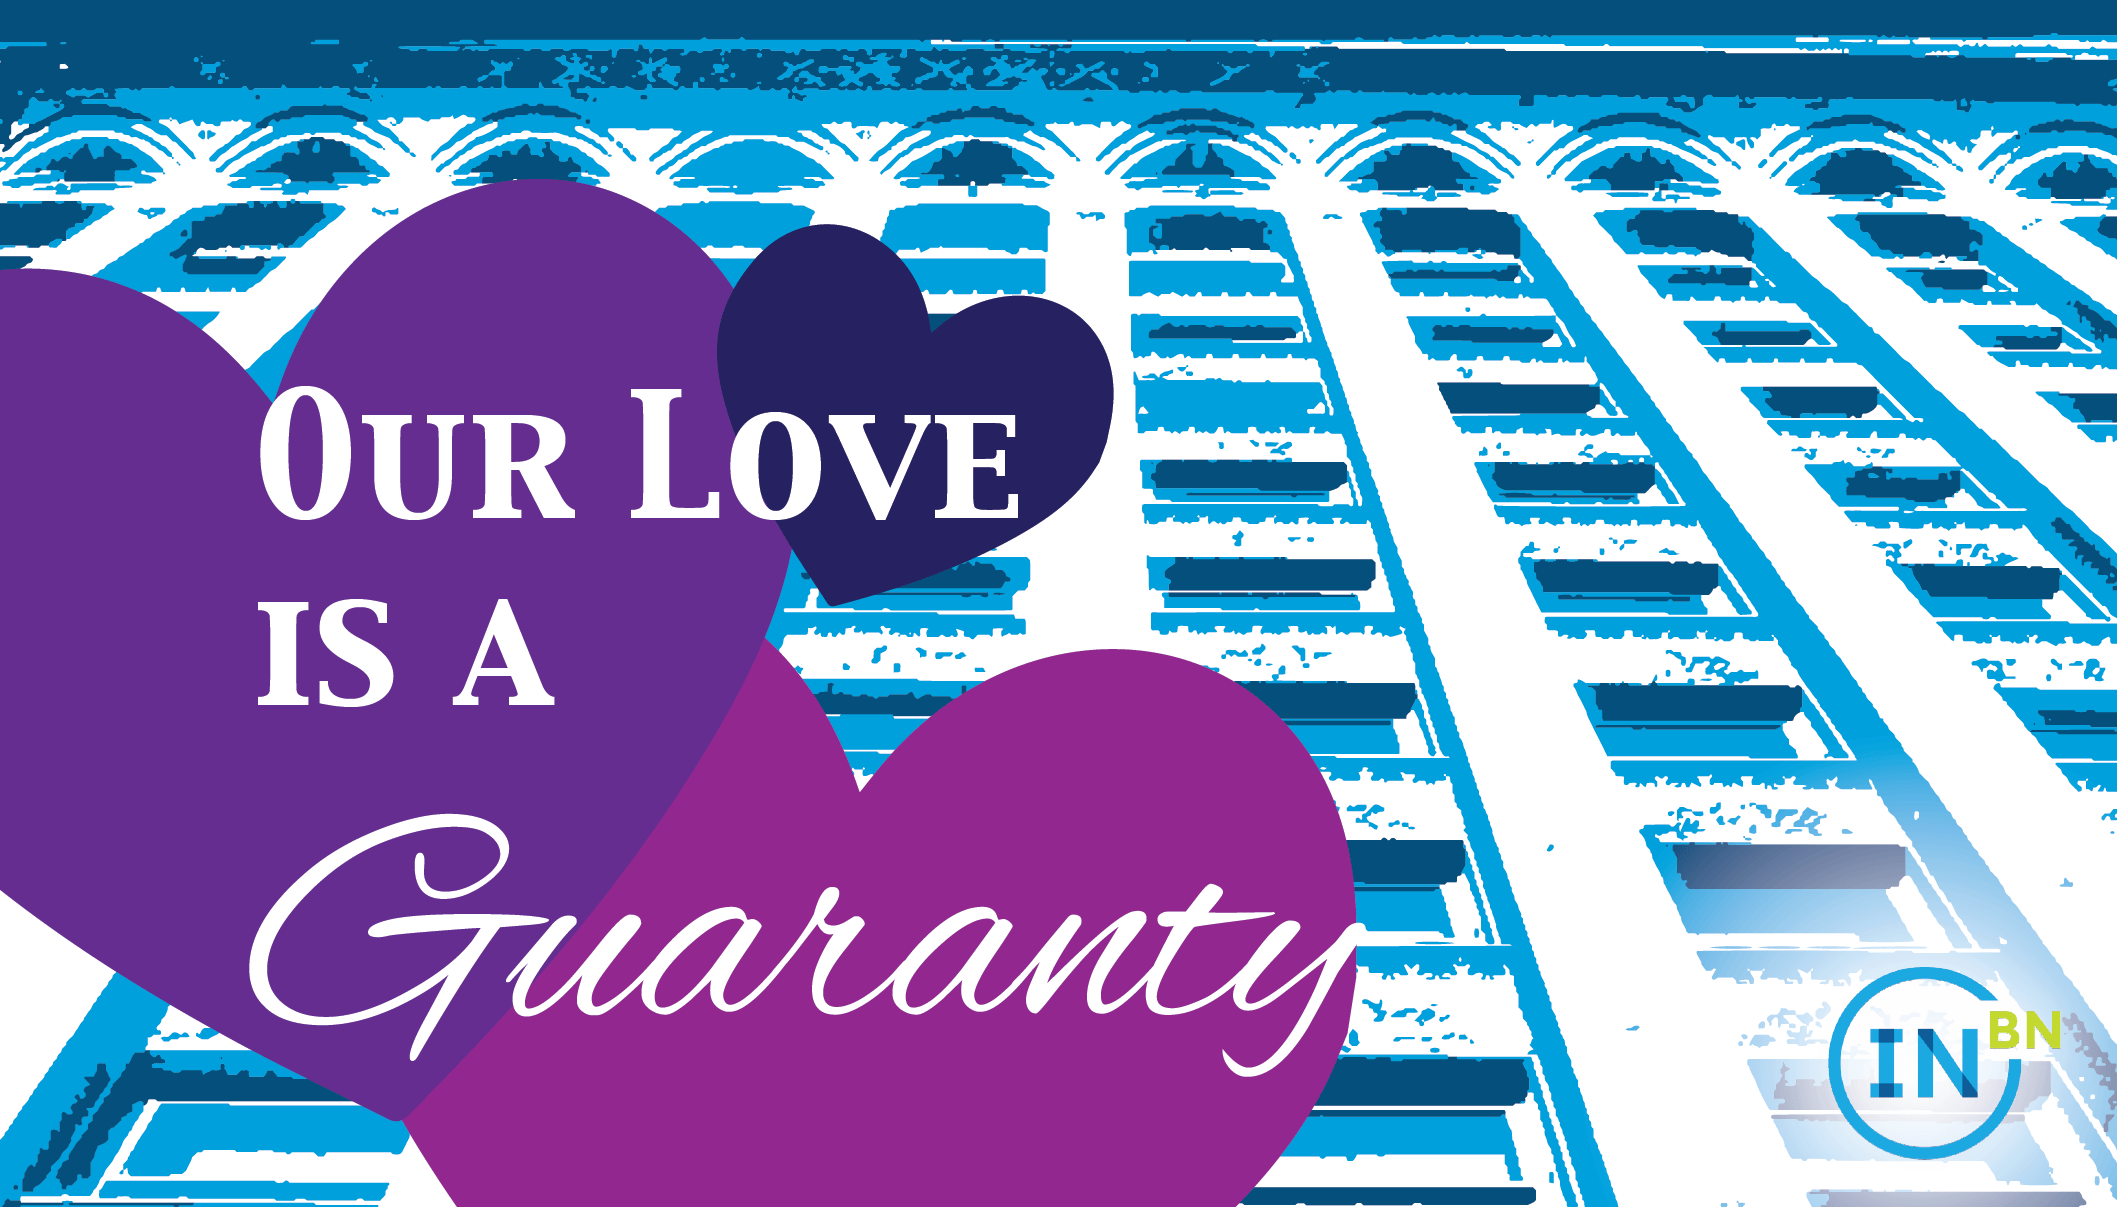 Our love is a Guaranty.